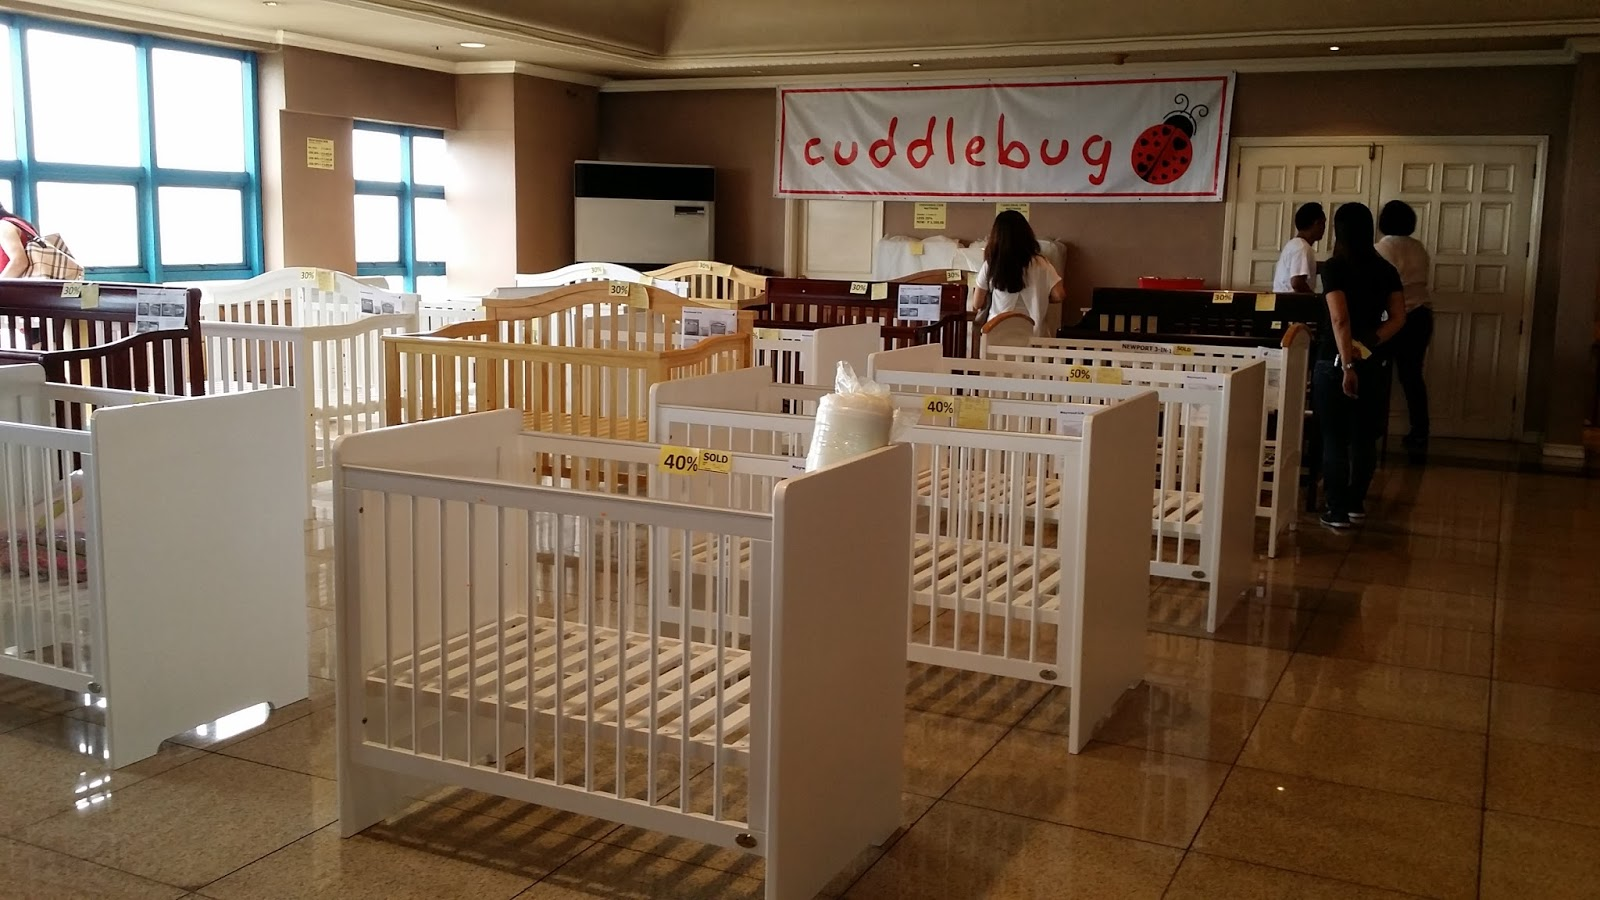 Crib for sale in davao city - Hospital Crib For Sale The Way They Do It Is They Display The Actual Item